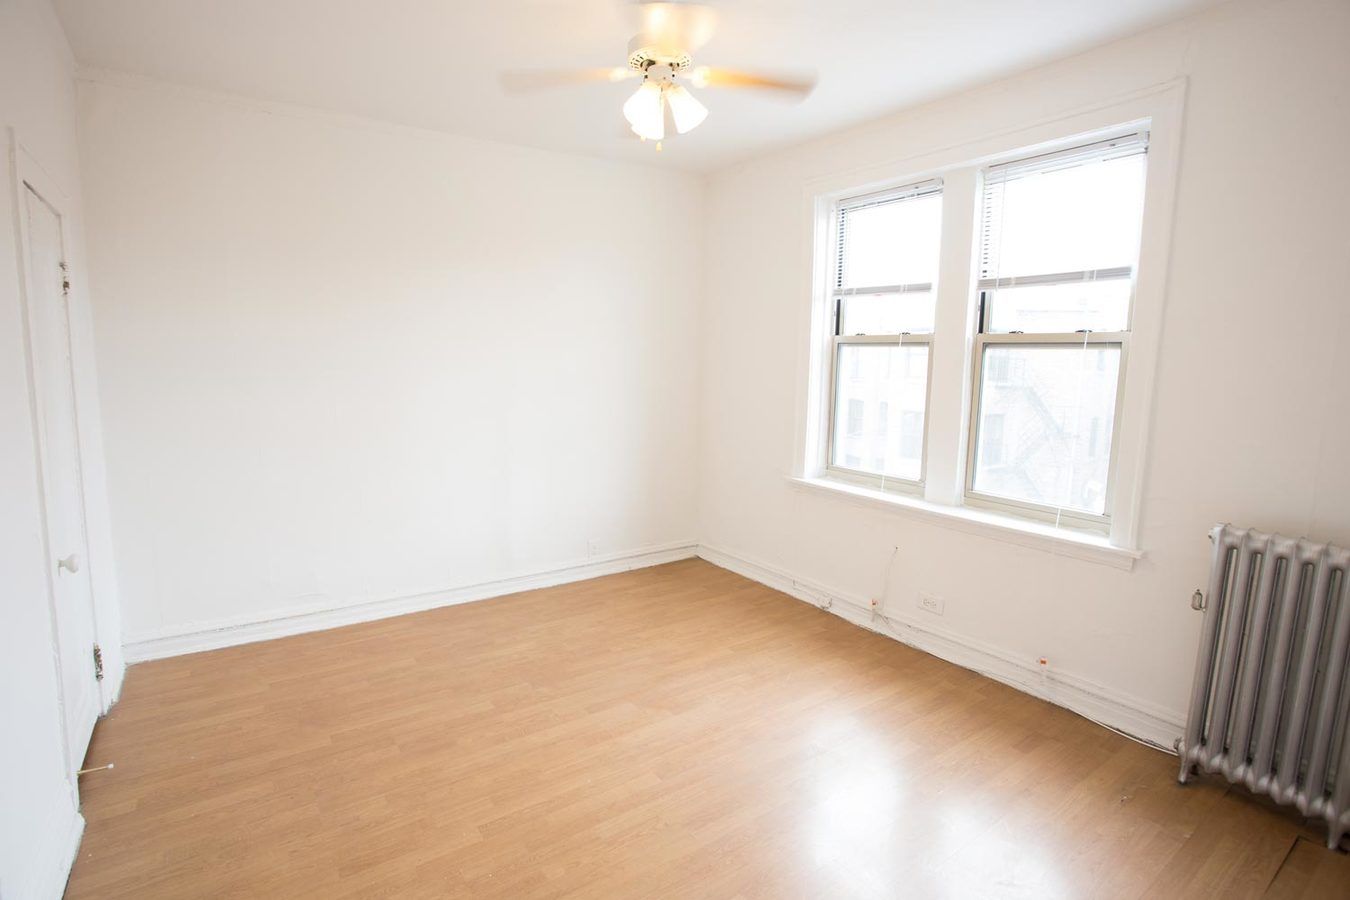 2 Bedrooms 1 Bathroom Apartment for rent at 5034-5046 S. Woodlawn Avenue in Chicago, IL